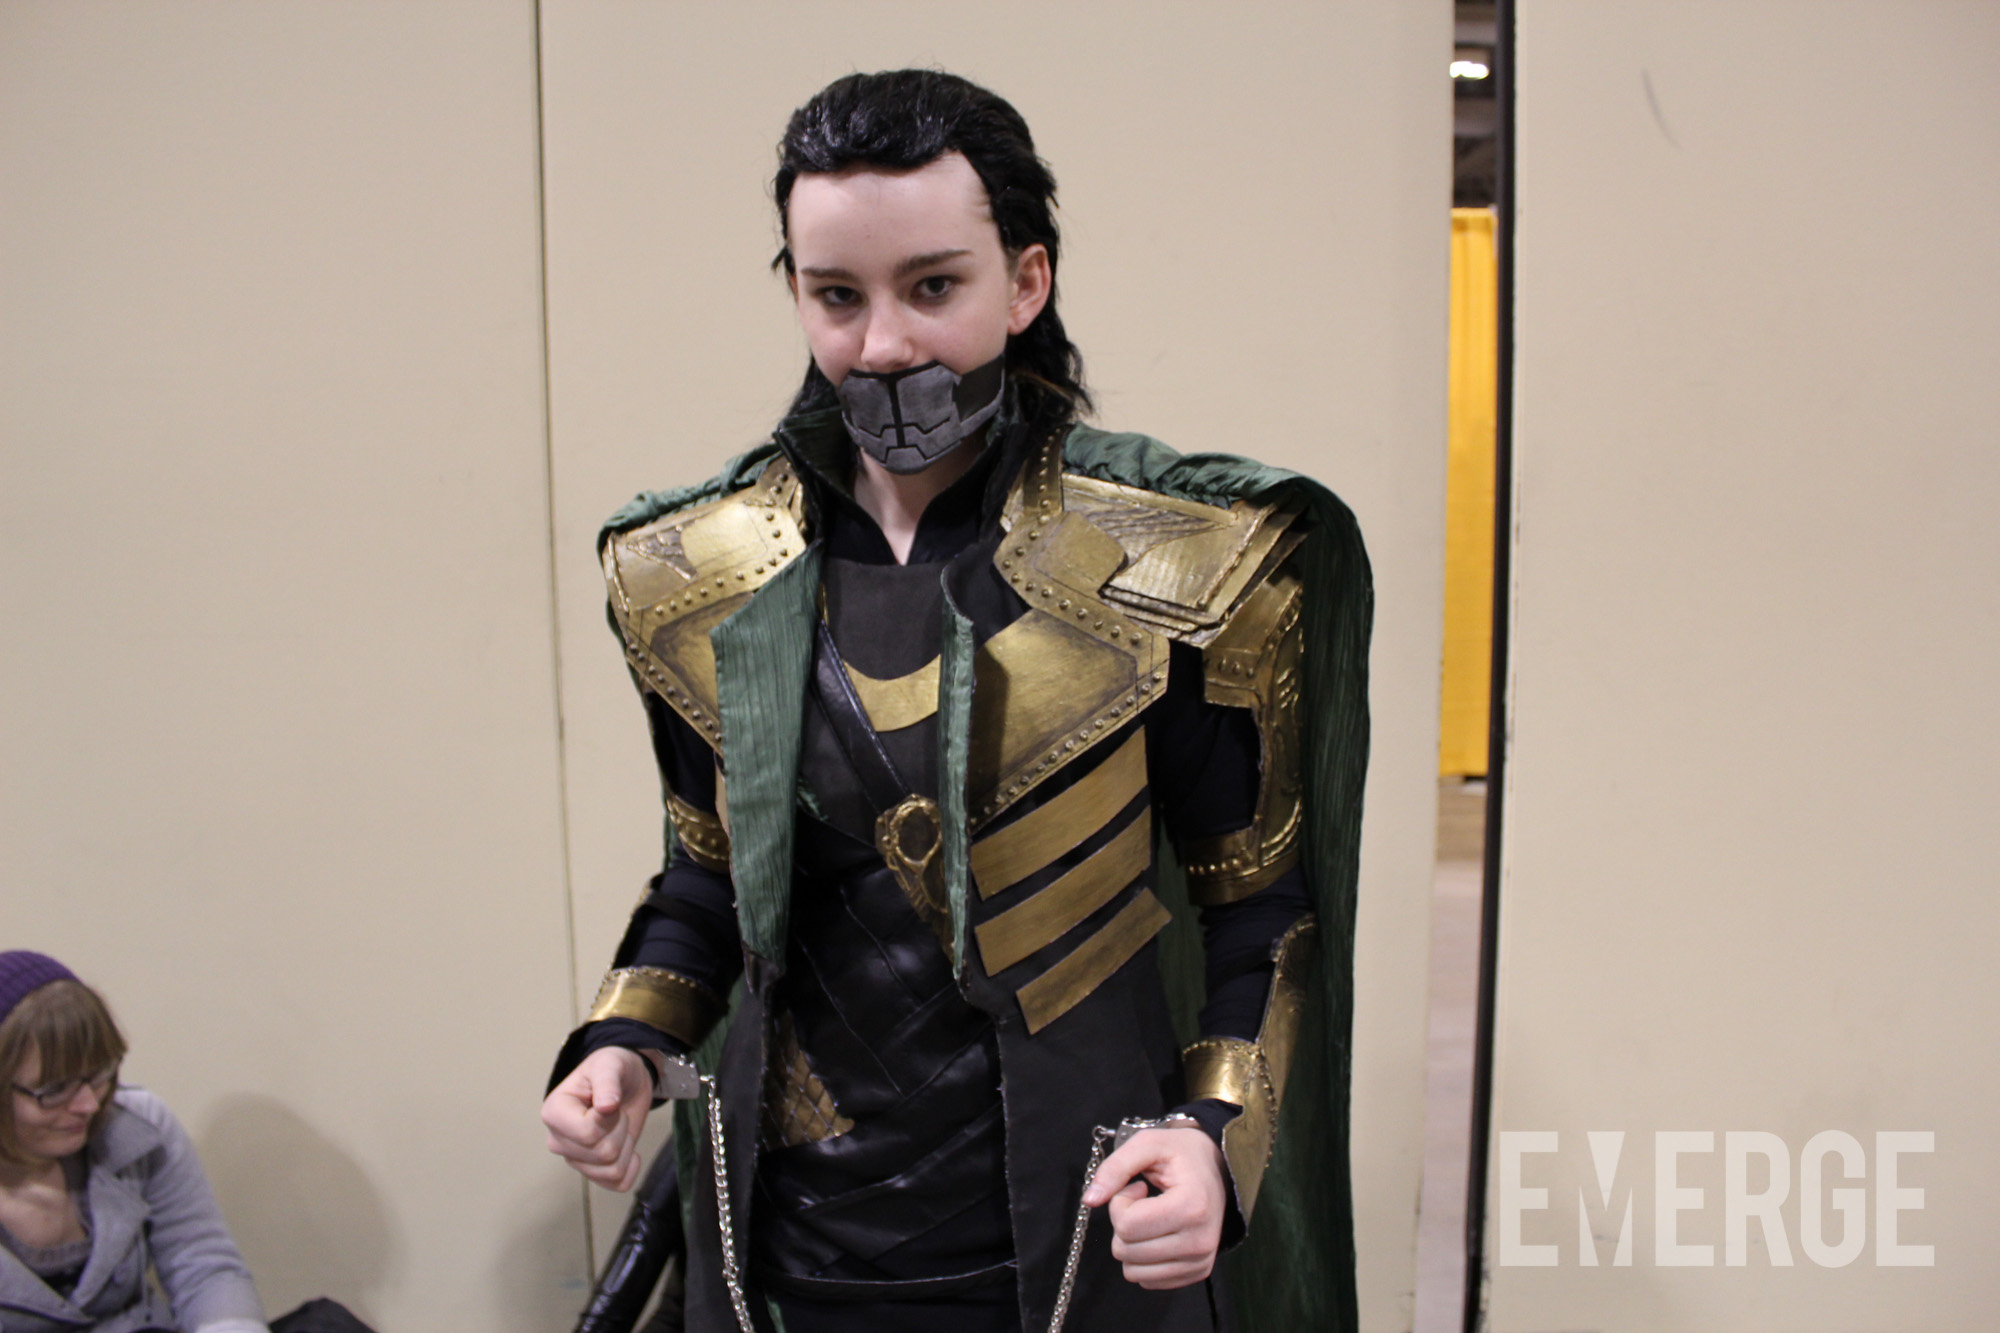 This is what happens when you try to conquer the world, Loki